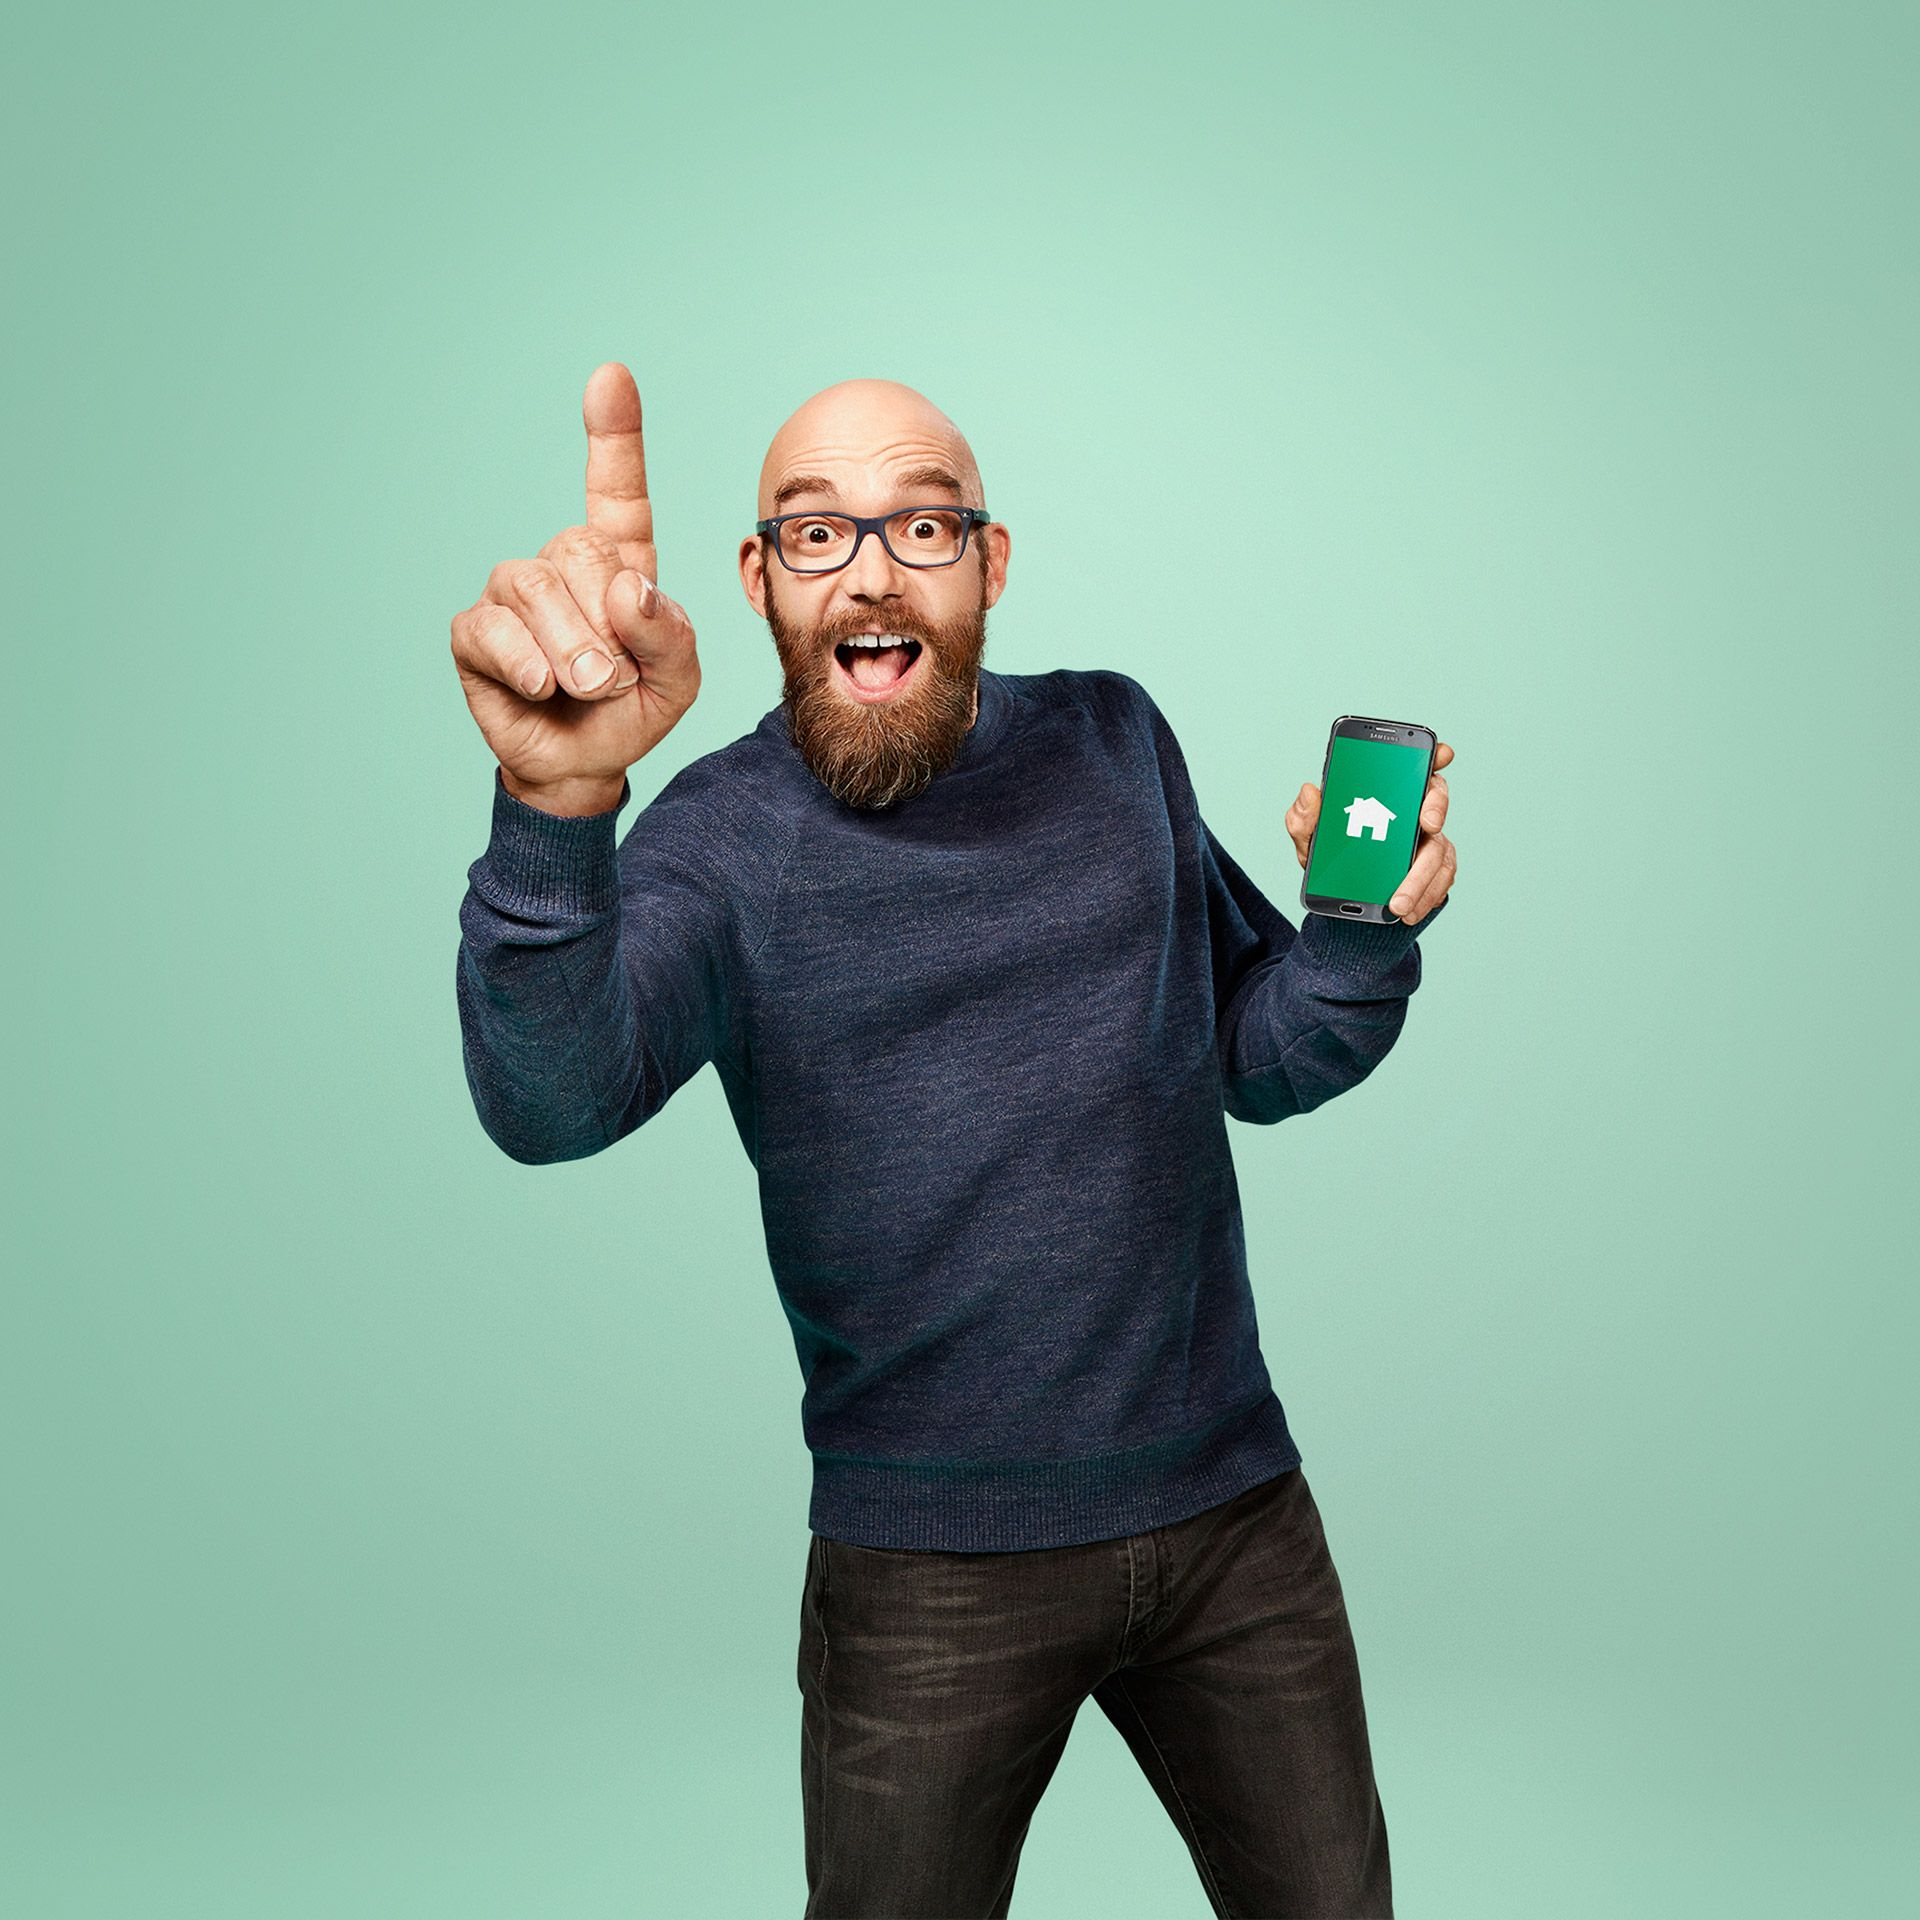 bald man with huge hand looking surprised holding phone by Jocelyn Michel for Desjardins Assurance with Lg2